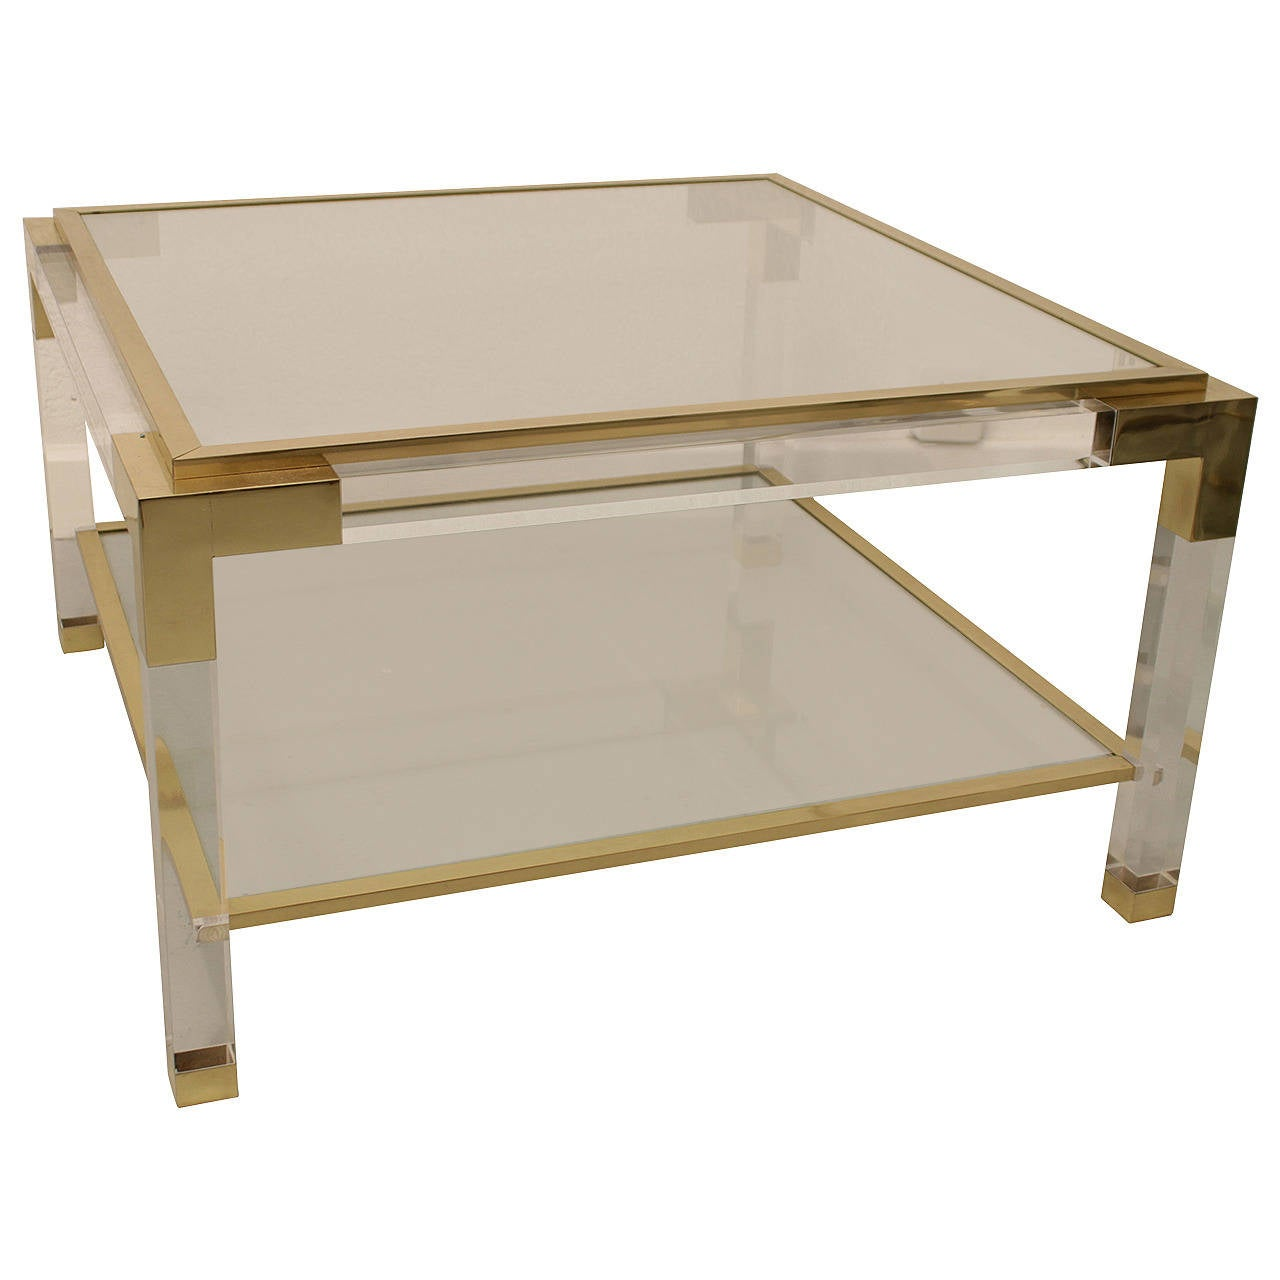 Vintage lucite brass and glass coffee table for sale at for Acrylic coffee tables for sale